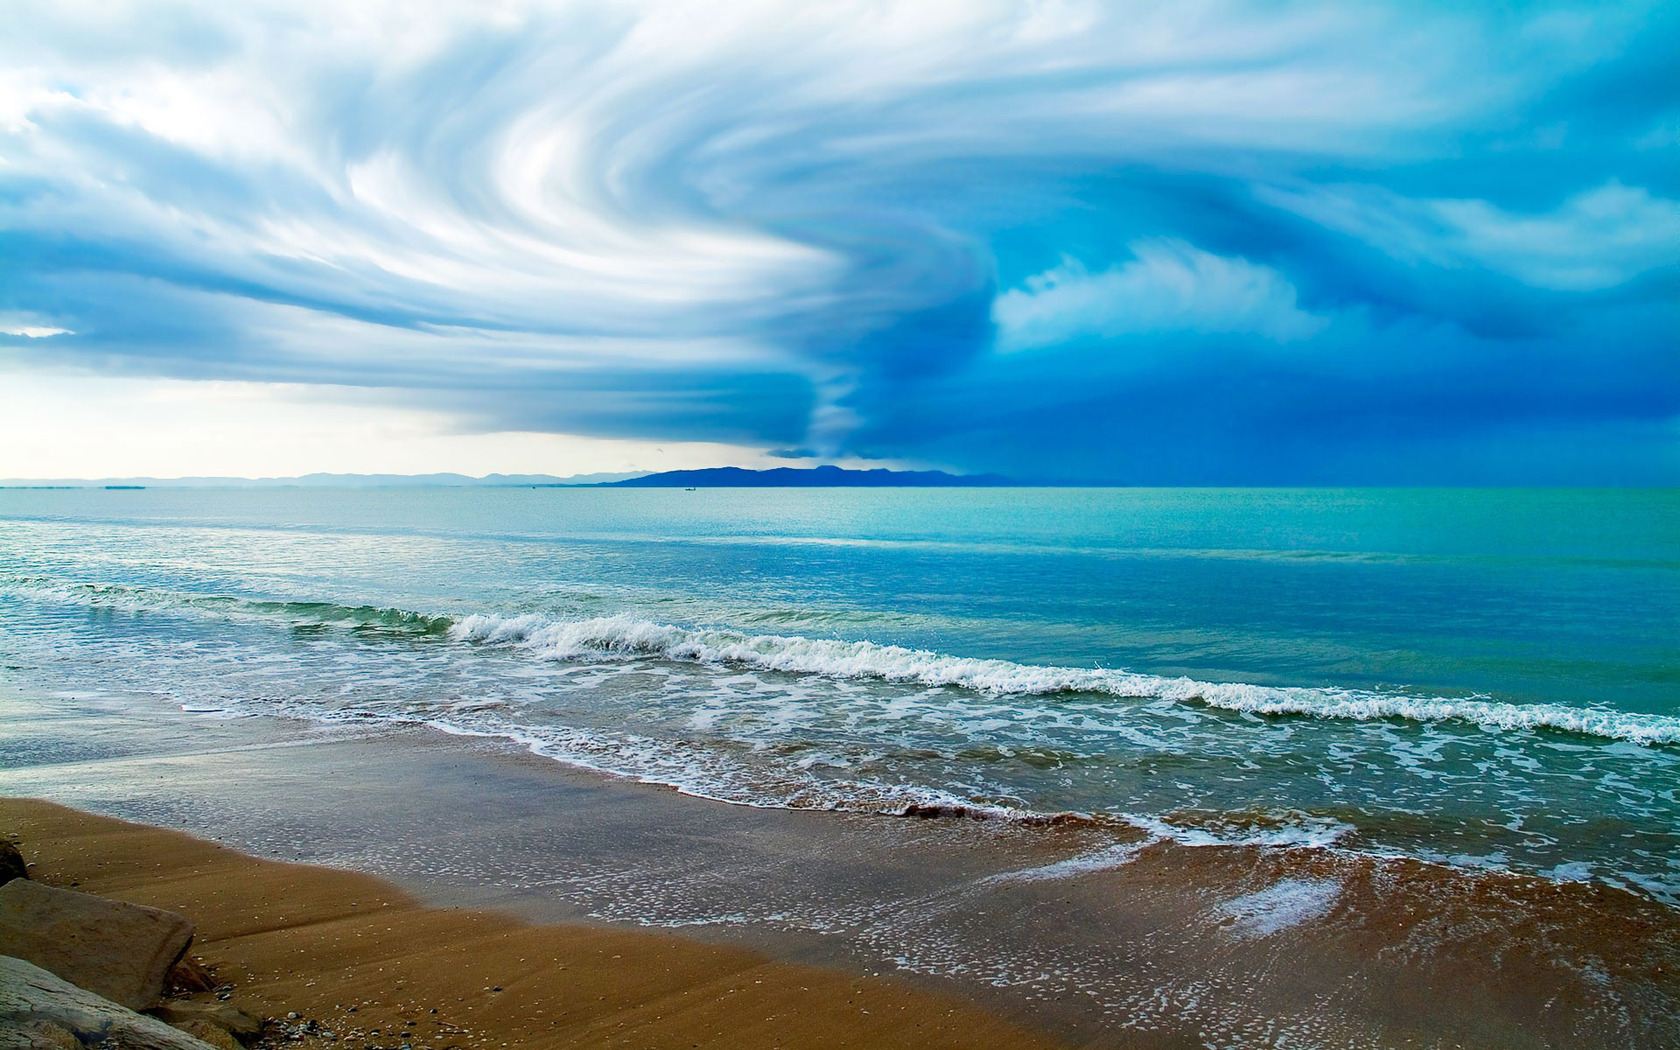 Swirling clouds over ocean